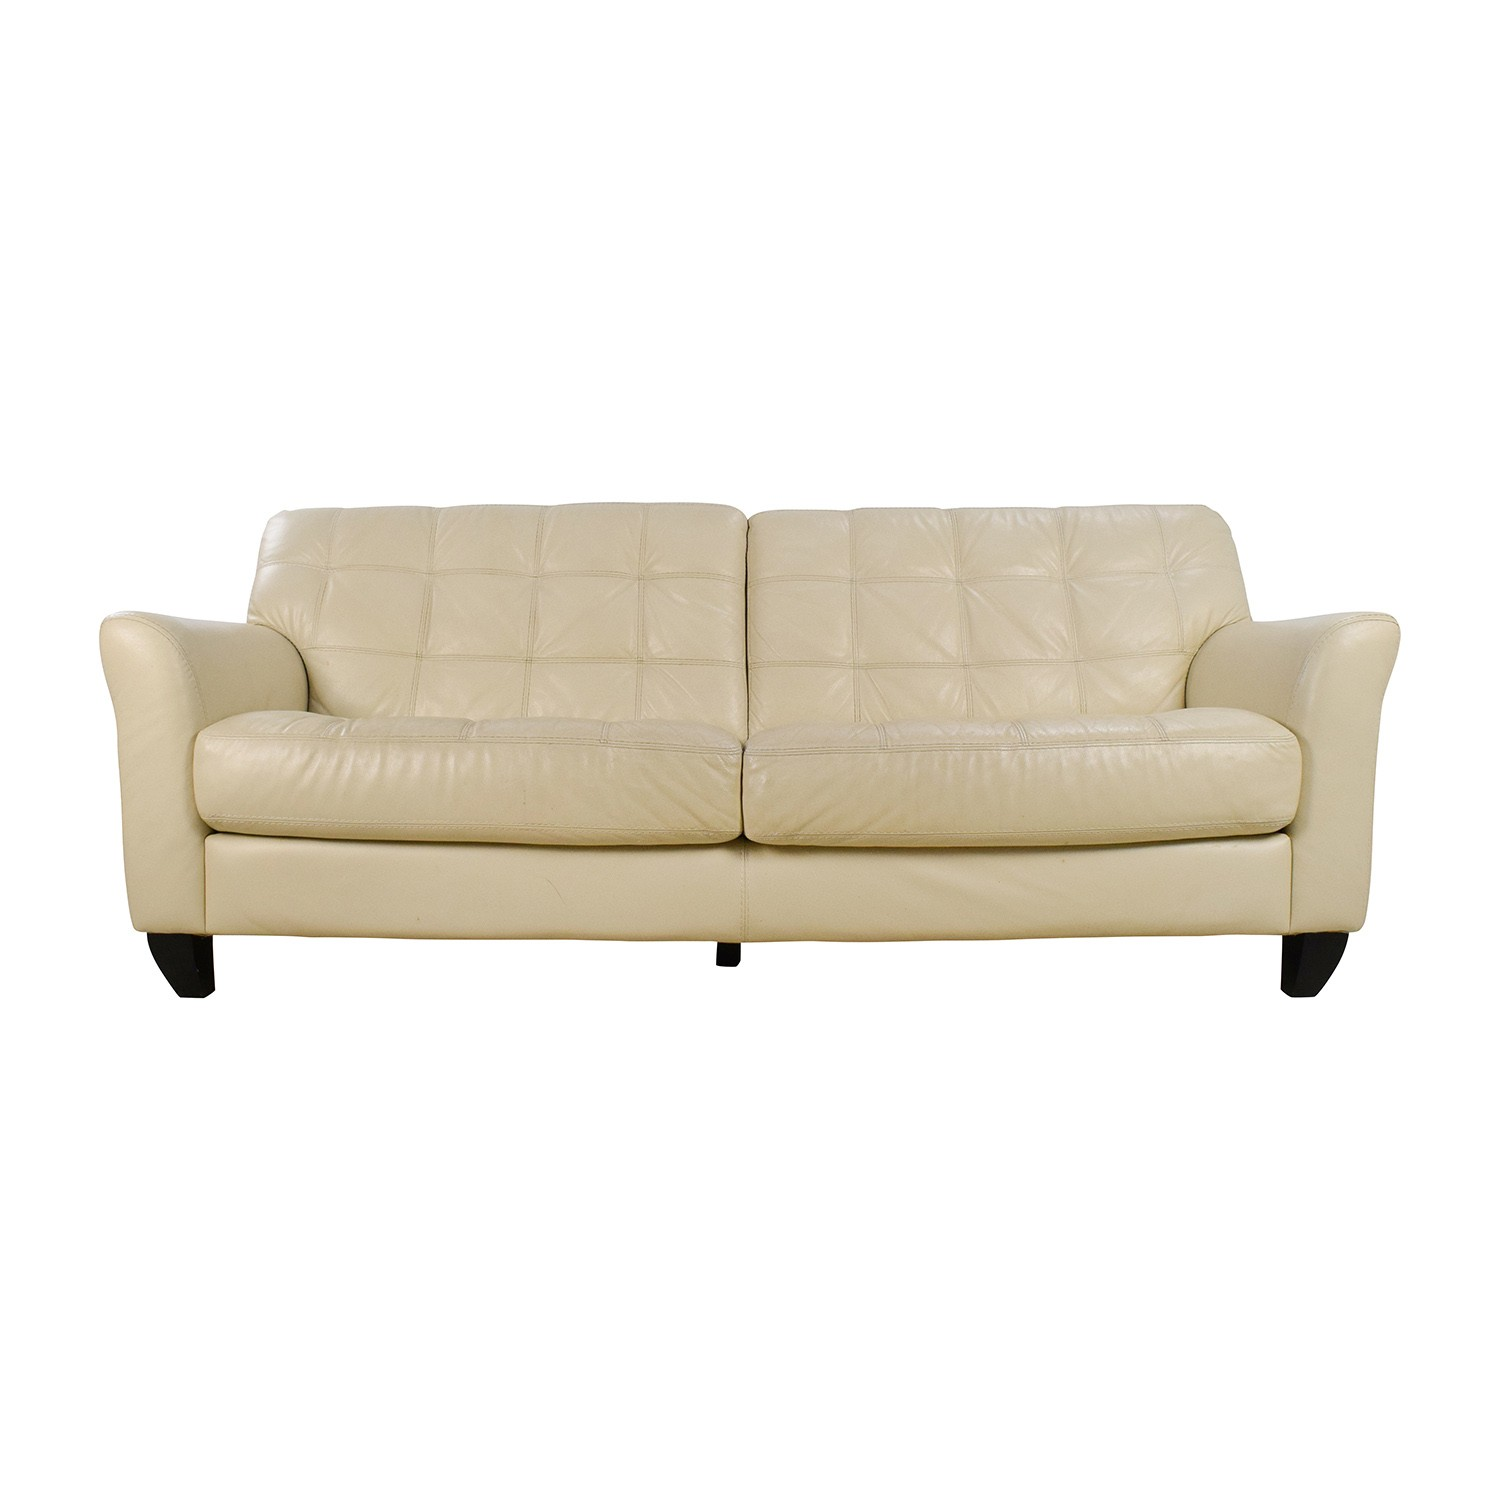 Sofas at Macy's Inspirational Off Macys Macys Milan White Leather Couch sofas Wallpaper